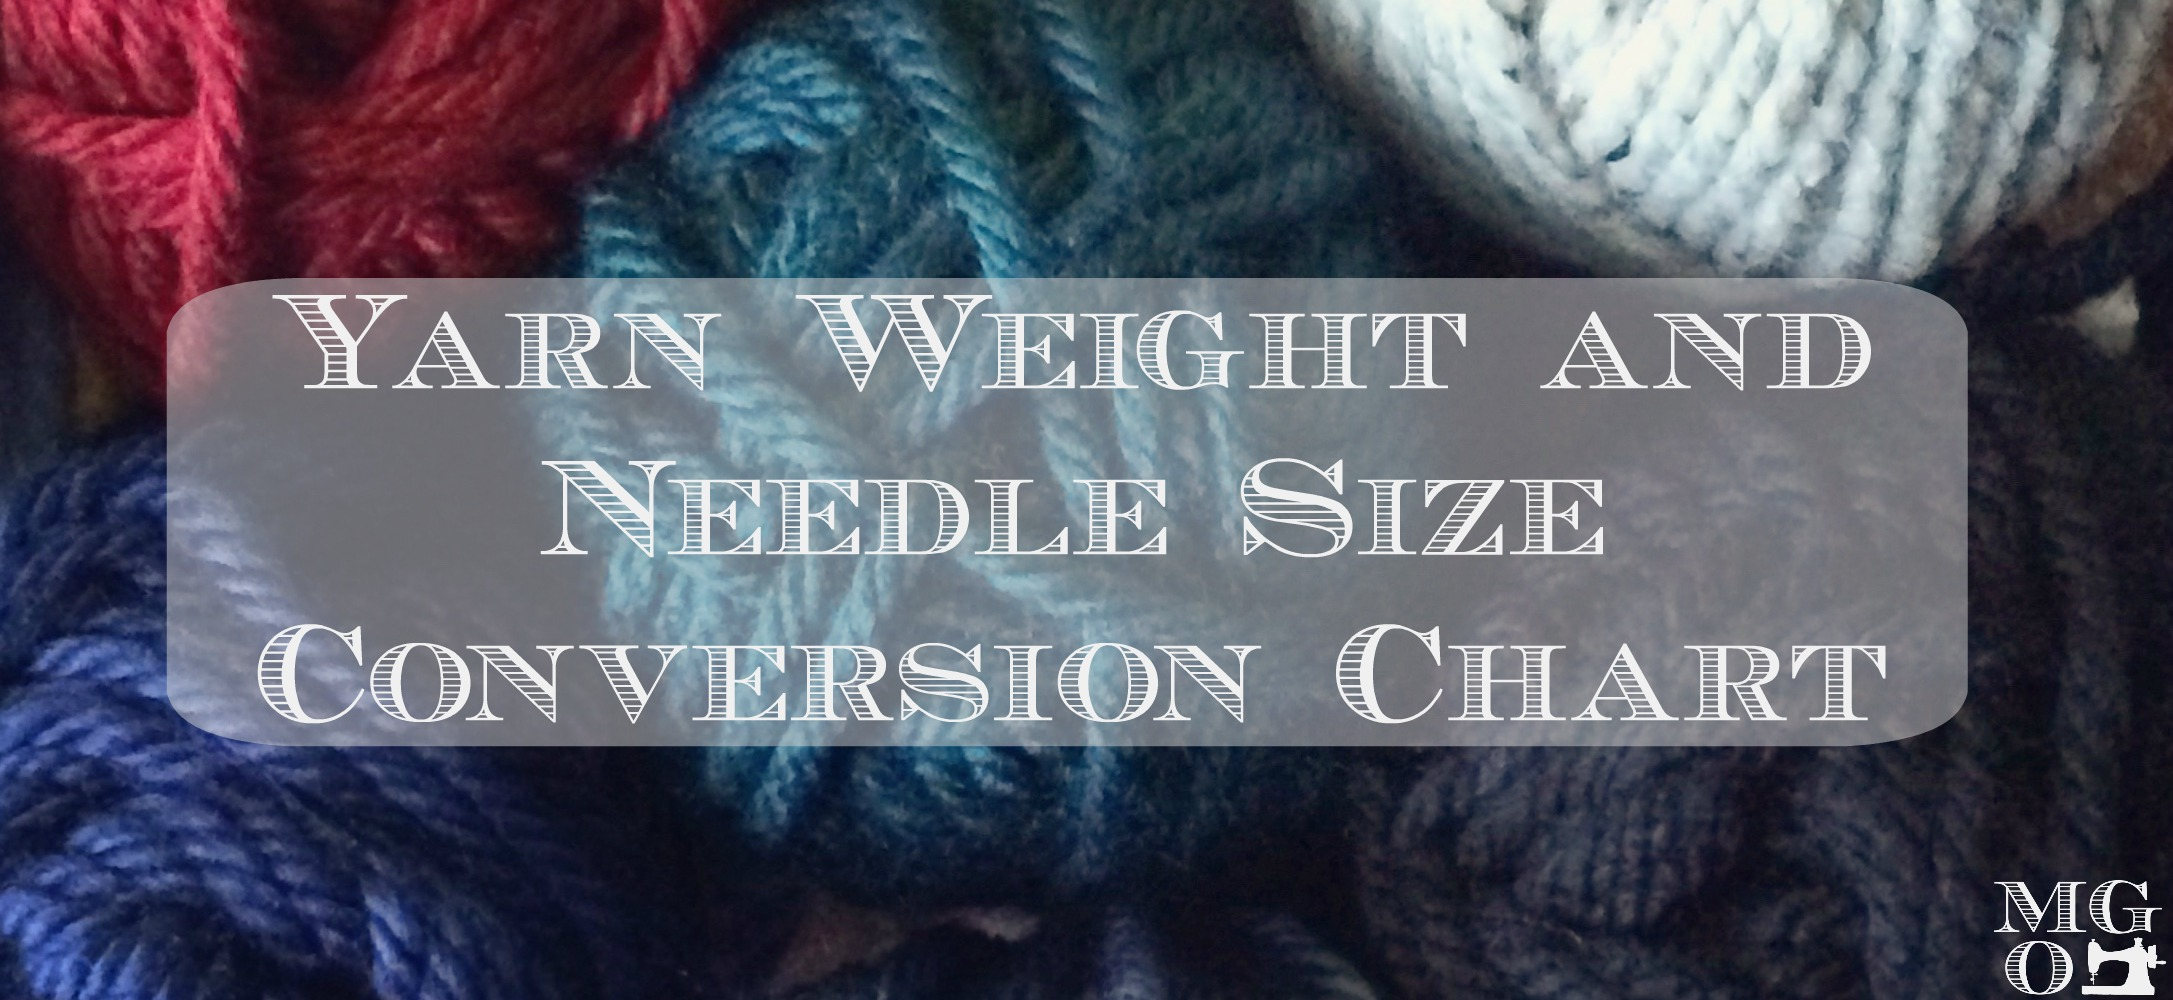 Yarn Weights And Knitting Needle Size Conversion Chart Handmade